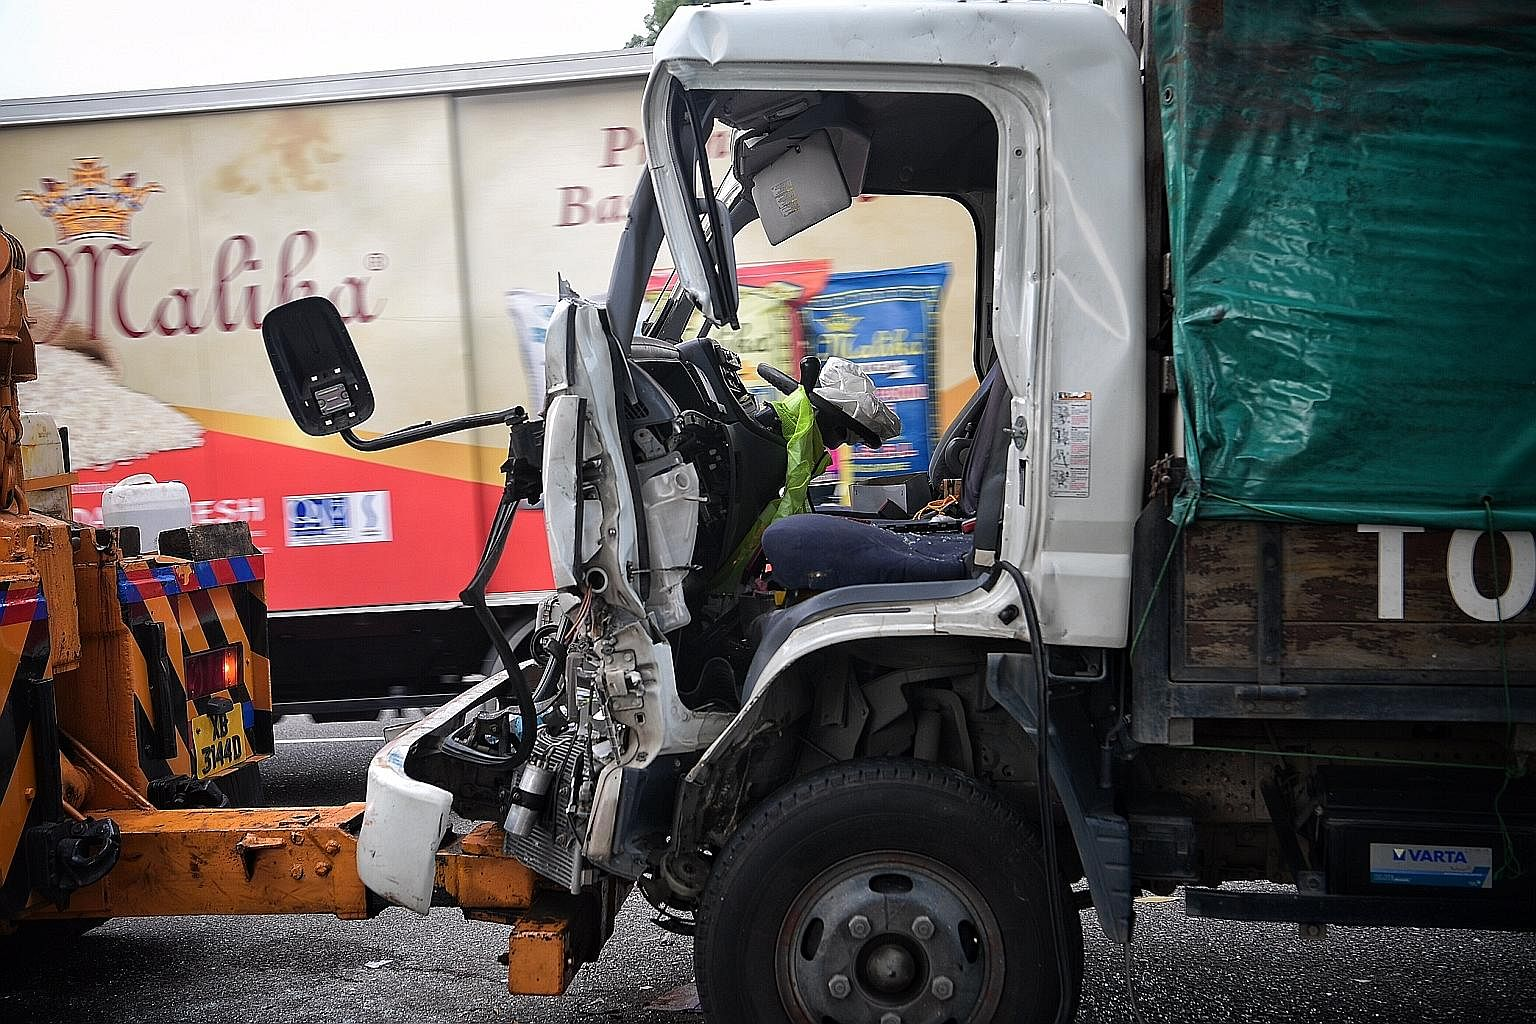 The force of the collision between a trailer and a lorry along AYE yesterday crushed the lorry's cabin, trapping the driver and two passengers. SCDF personnel used hydraulic power tools to extricate the three men from the wreckage. The accident cause